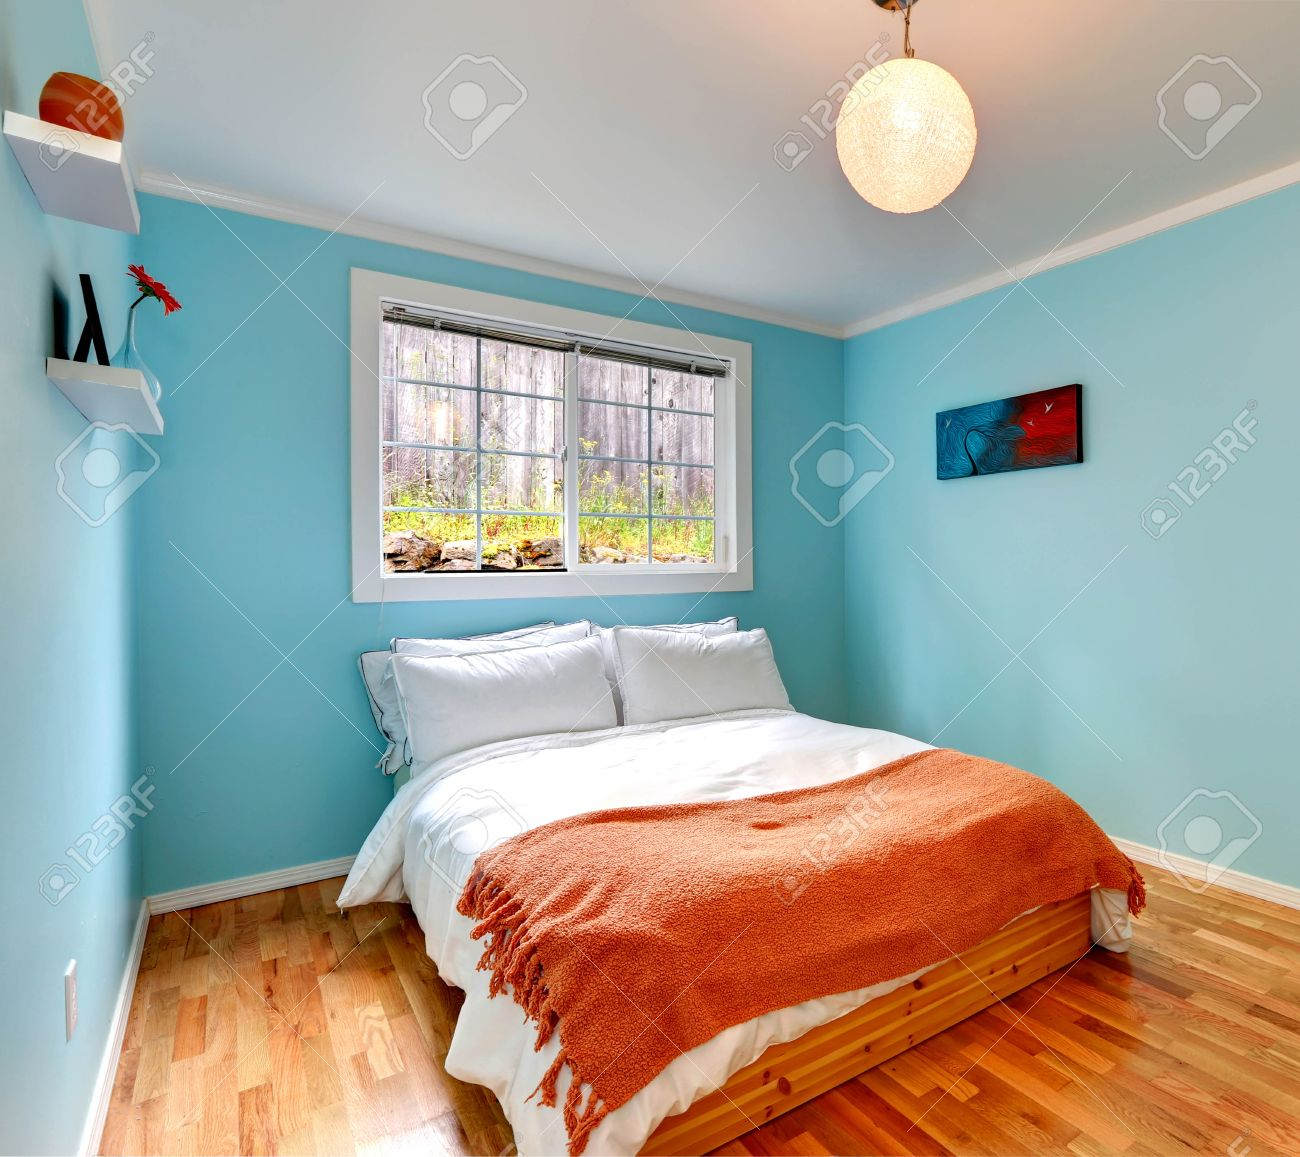 Light orange and white bedroom - Cozy Bedroom In Light Blue Color With Hardwood Floor And Wooden Single Bed With White Andcozy